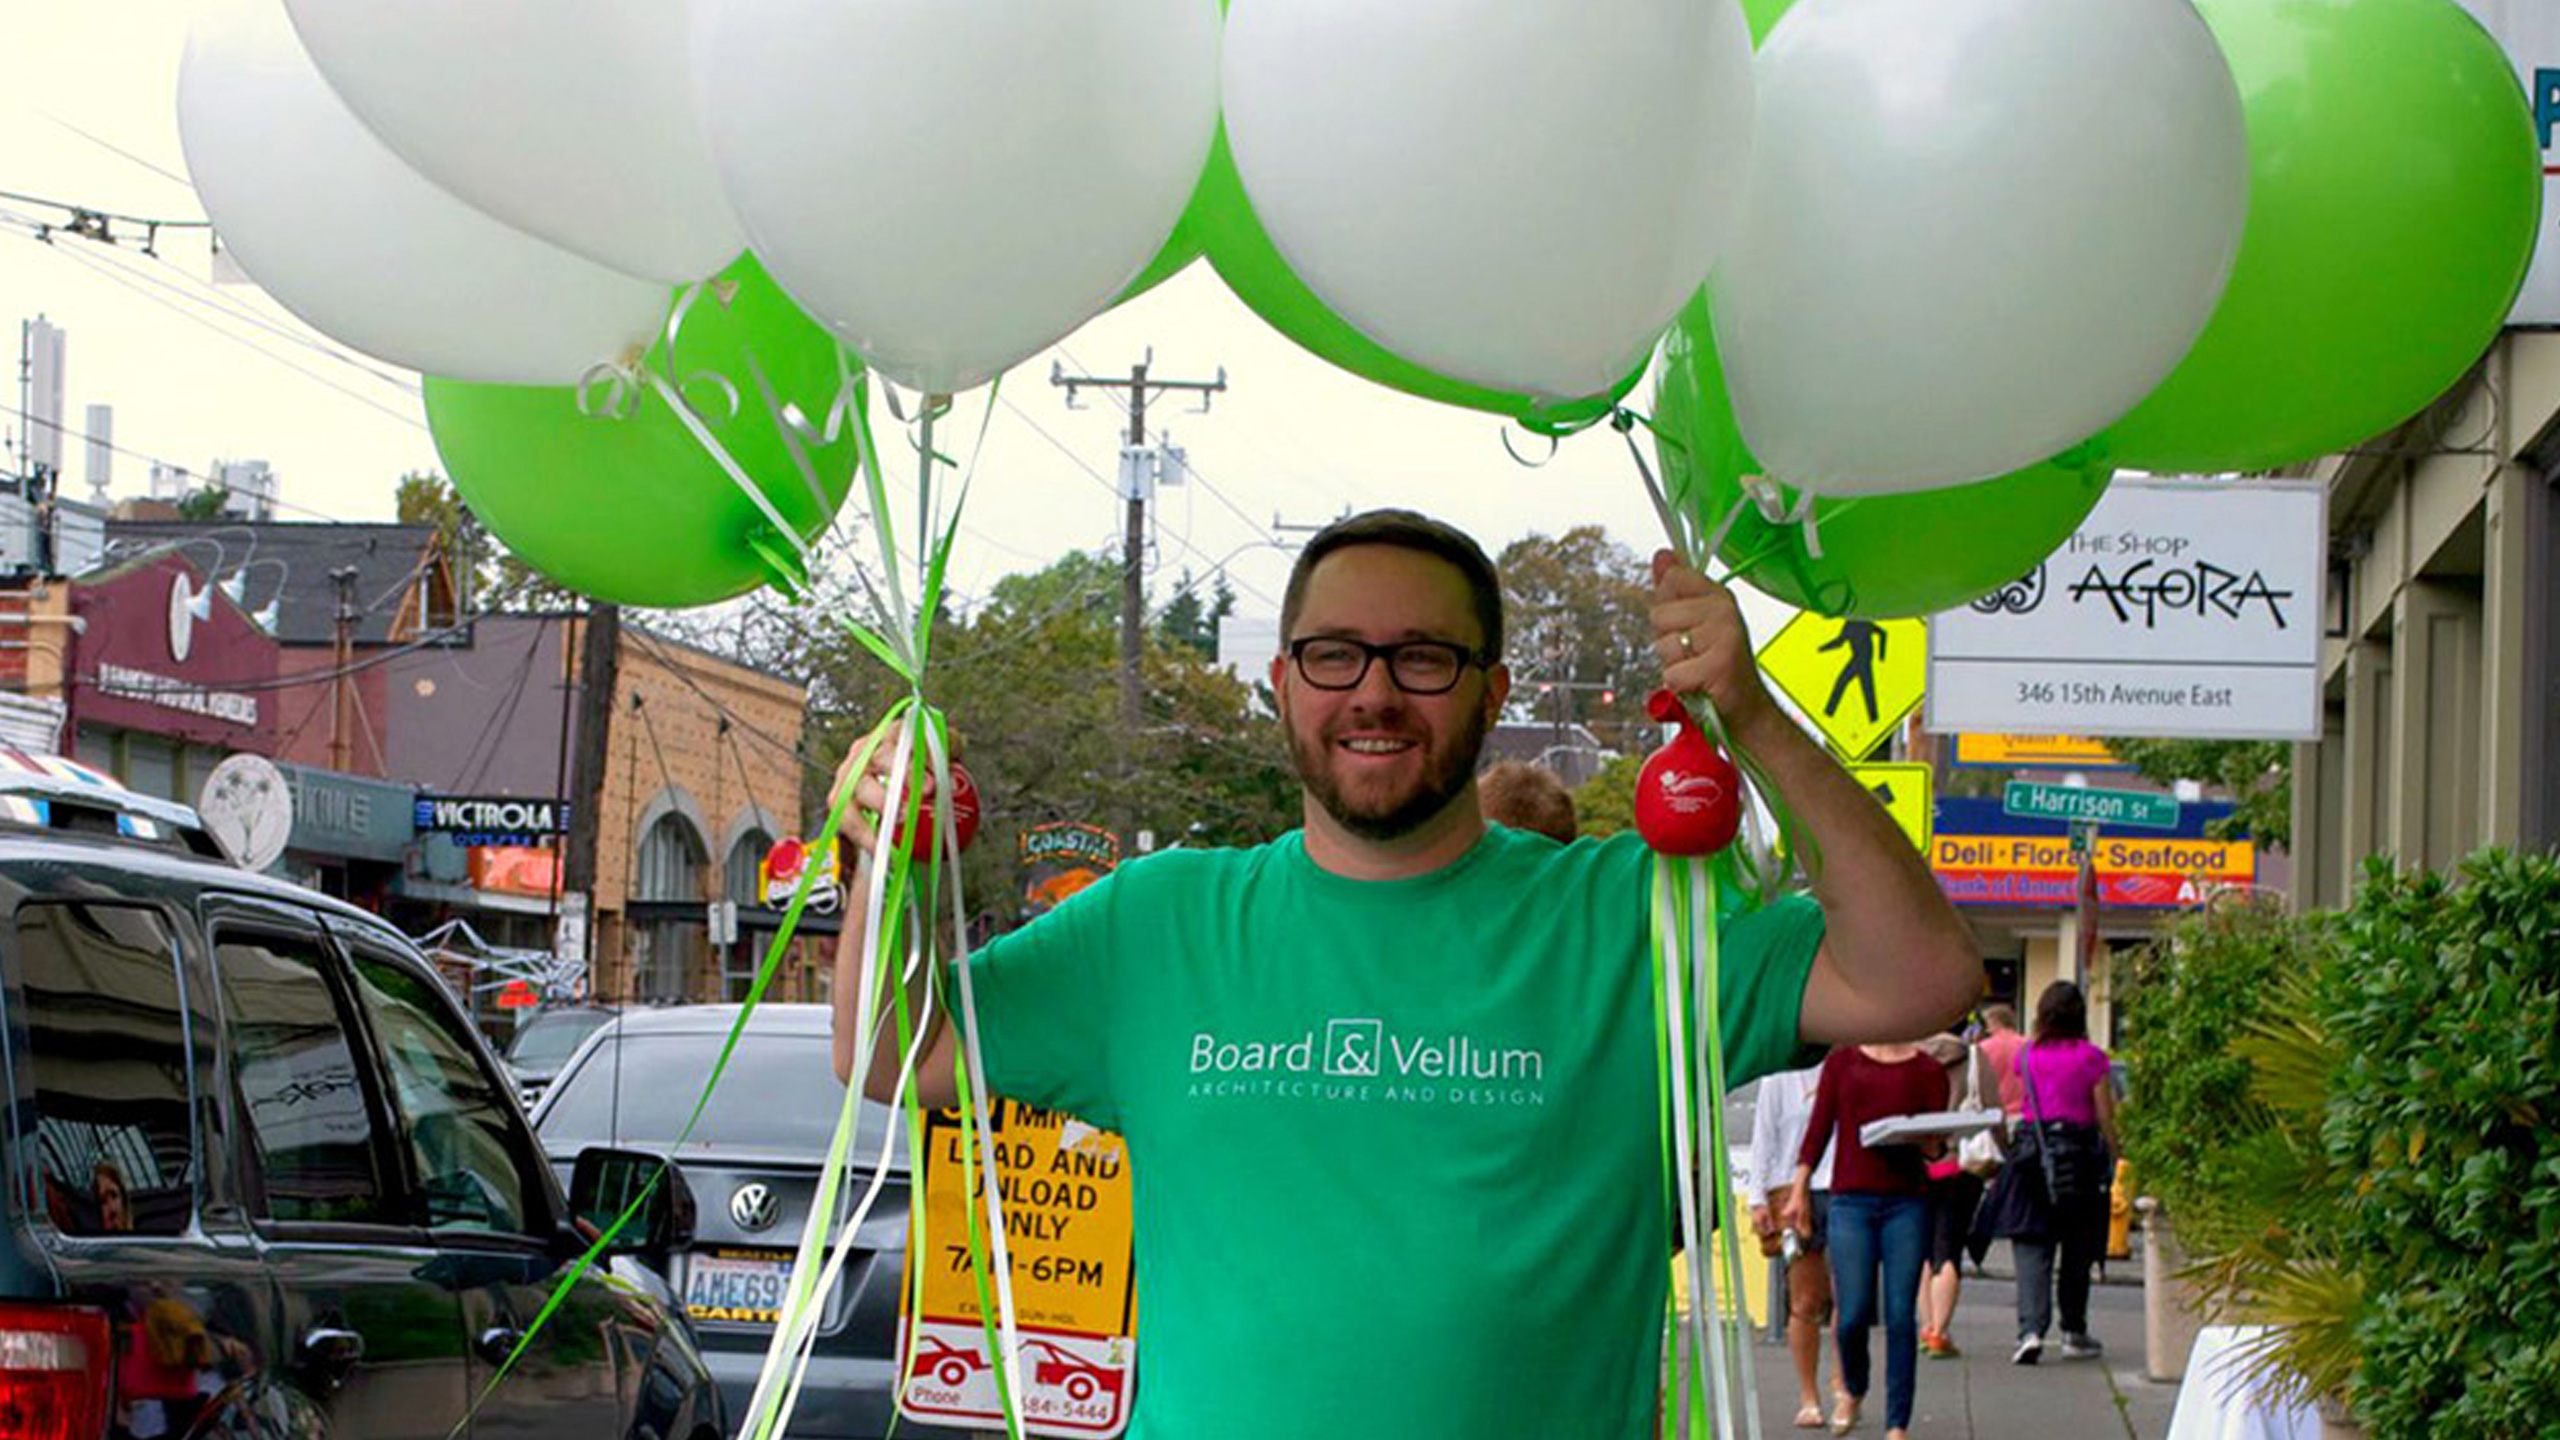 15th Ave. Merchant's Association Street Fest: Jeff Brings the Balloons - Cropped for Featured Image